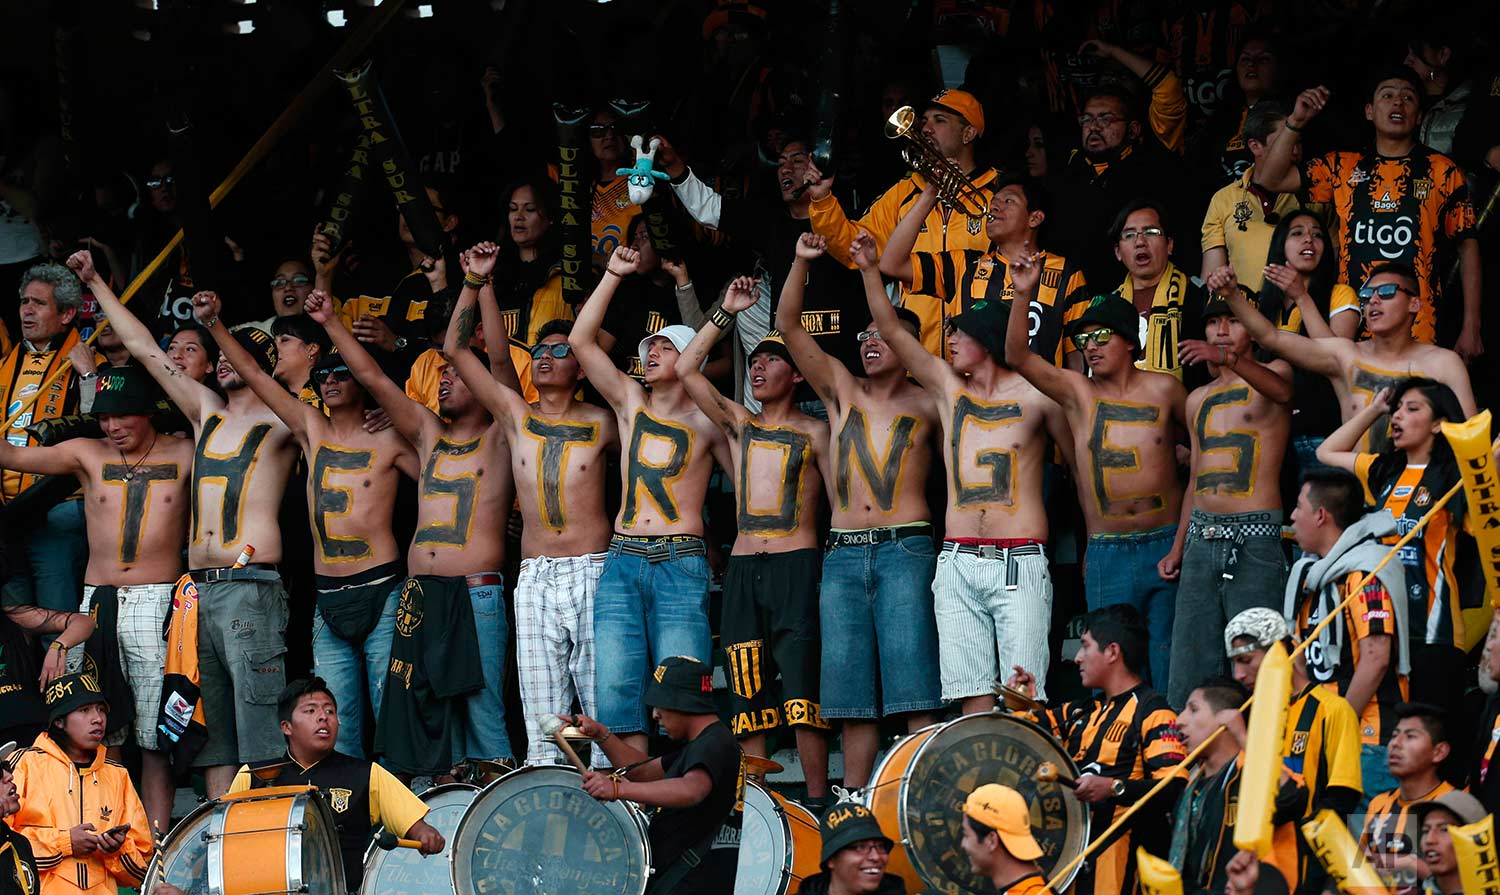 Fans of Bolivia's The Strongest cheer for their team before a Copa Libertadores soccer match against Argentina's Lanus in La Paz, Bolivia, Thursday, July 6, 2017. (AP Photo/Juan Karita)